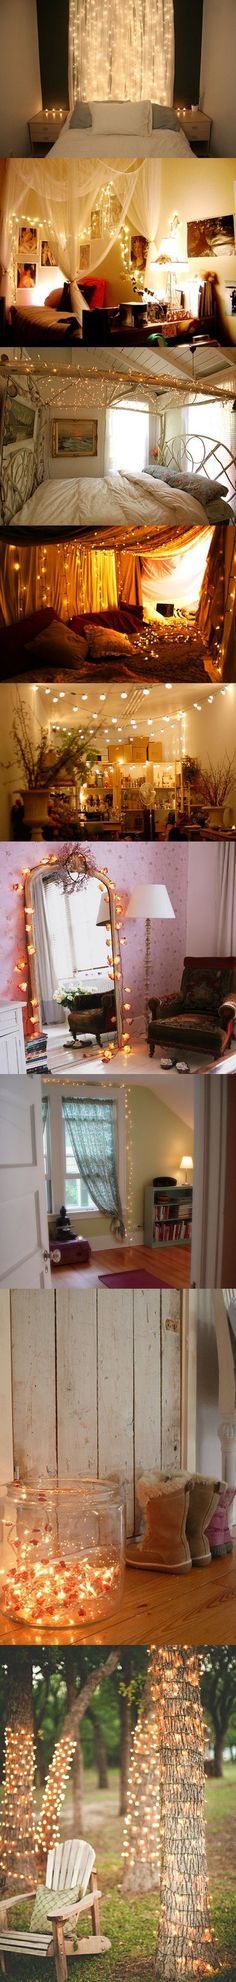 Home Lighting Ideas Pictures, Photos, and Images for Facebook, Tumblr, Pinterest, and Twitter